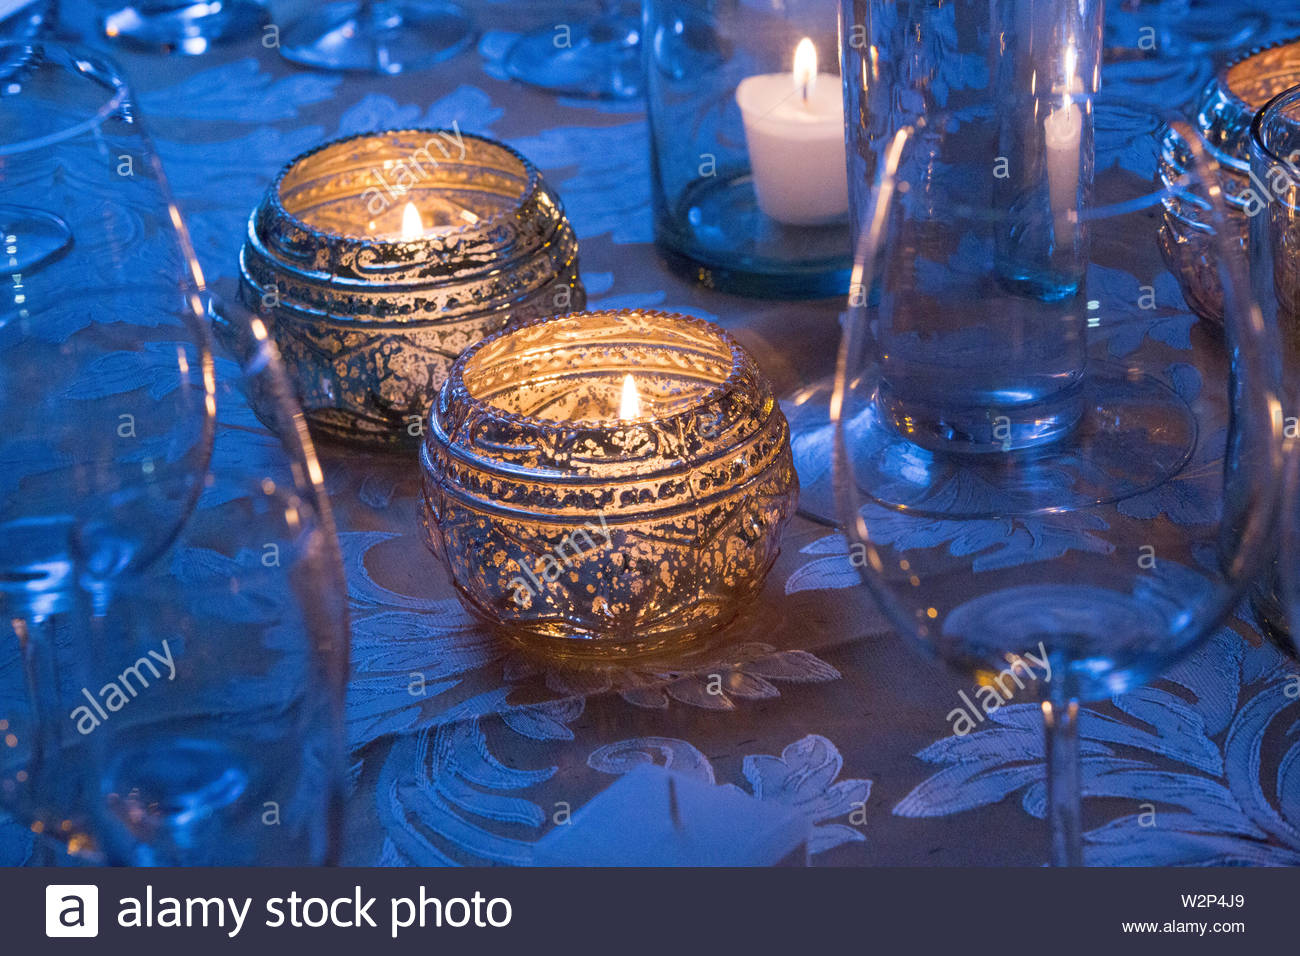 Christmas dinner table with candles and glassware. Preparation for holiday: Christmas and Hannukah dinner night. Concept family dinner on special occa - Stock Image